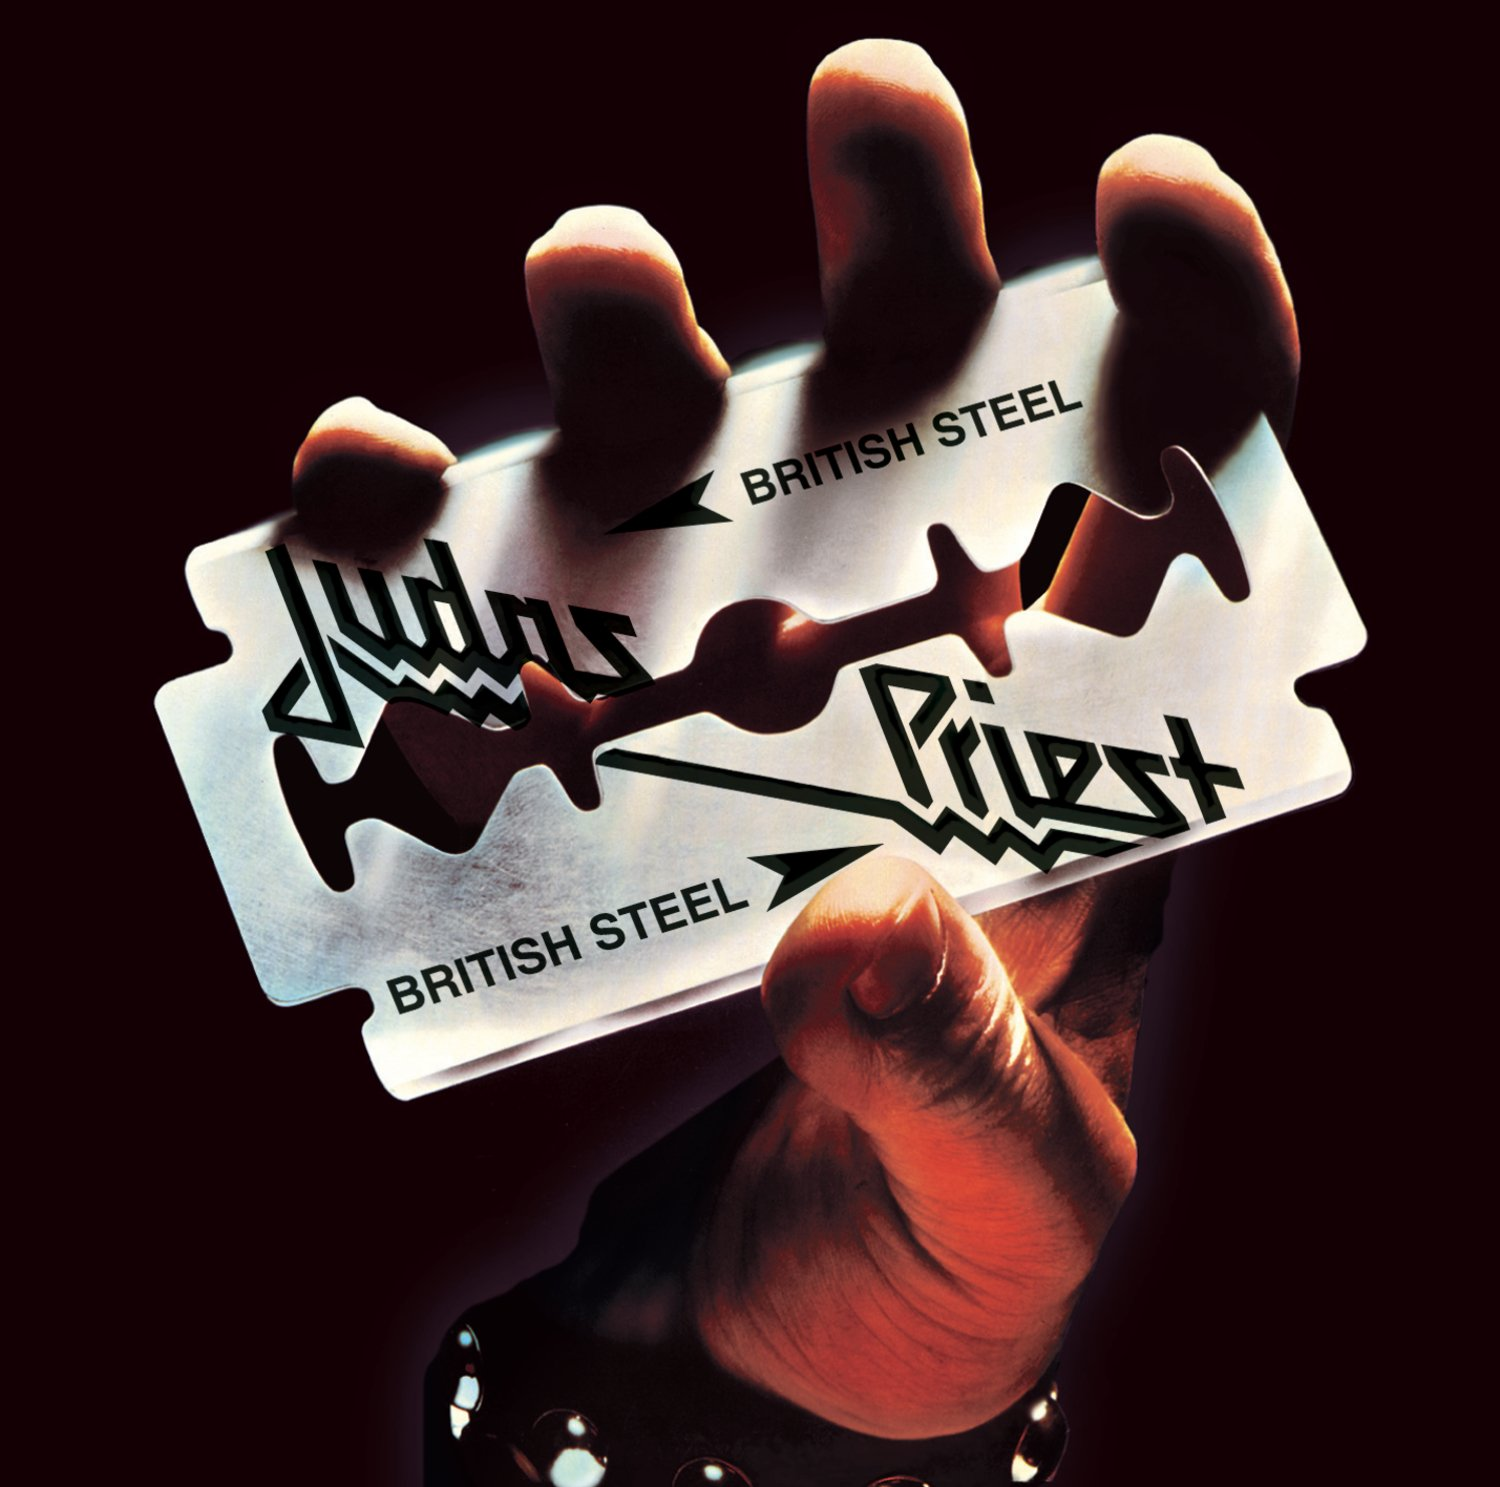 Vinilo : Judas Priest - British Steel (180 Gram Vinyl, Download Insert)